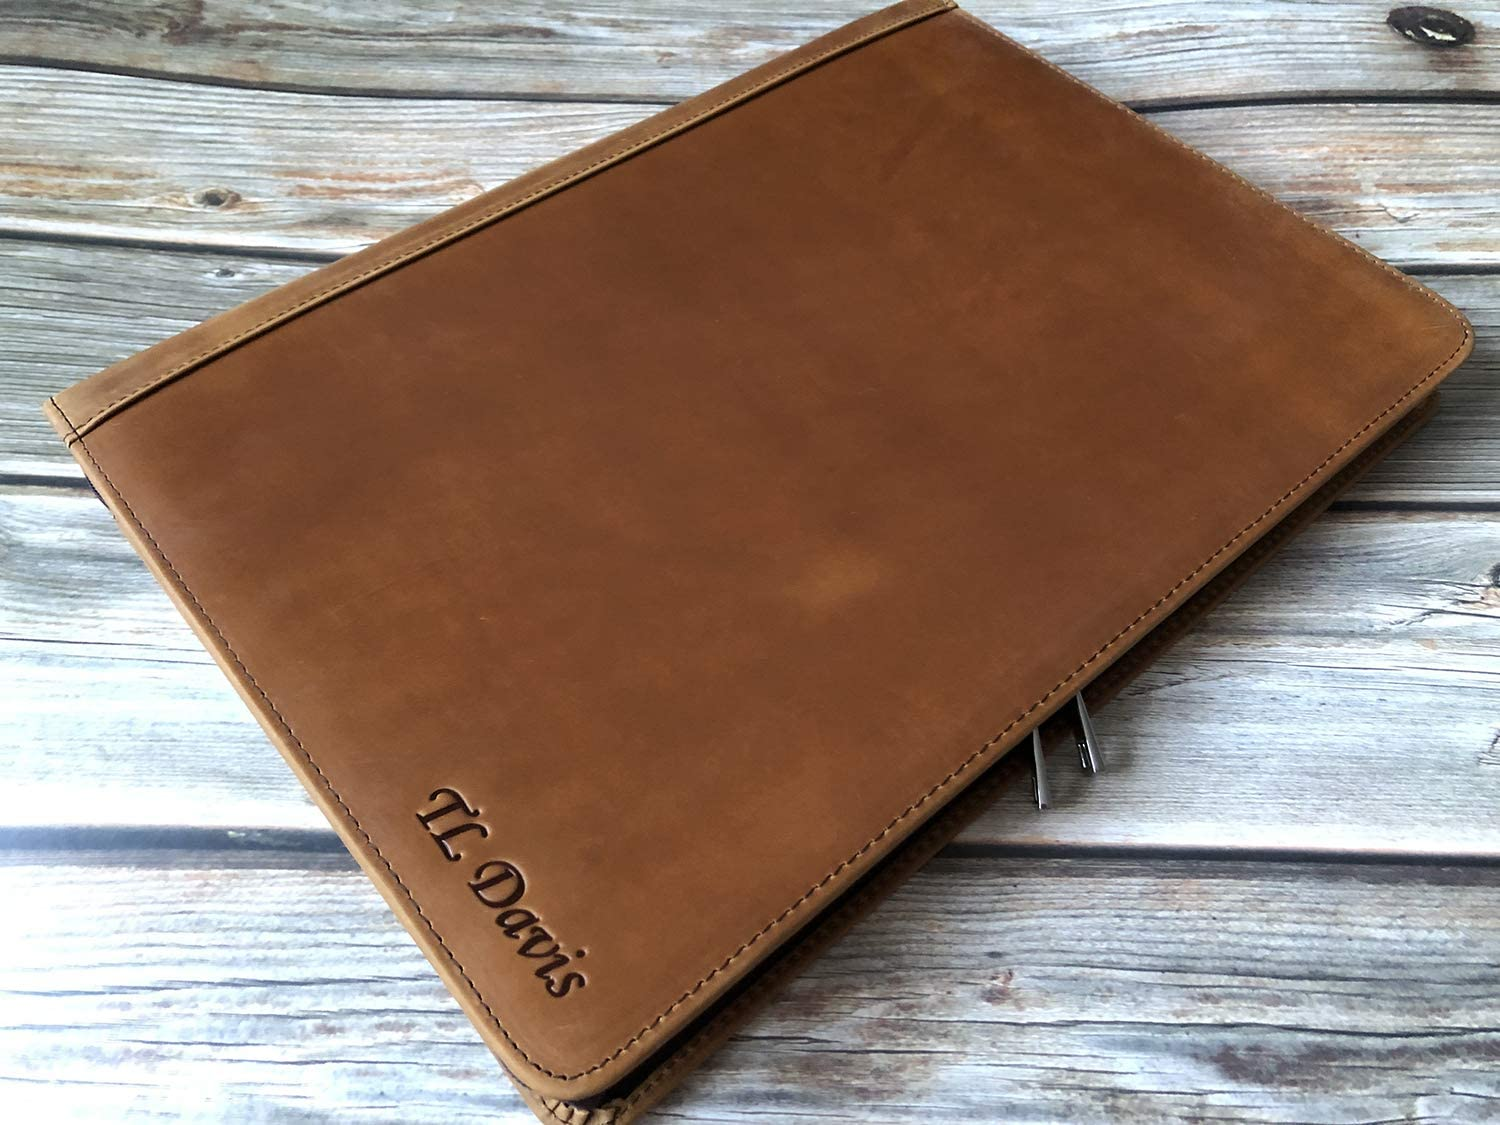 Customize Now, Vintage Brown Free Name Engraved Padfolio Personalized Vintage Leather Binder Portfolio Folder,Custom Gift for Men and Women